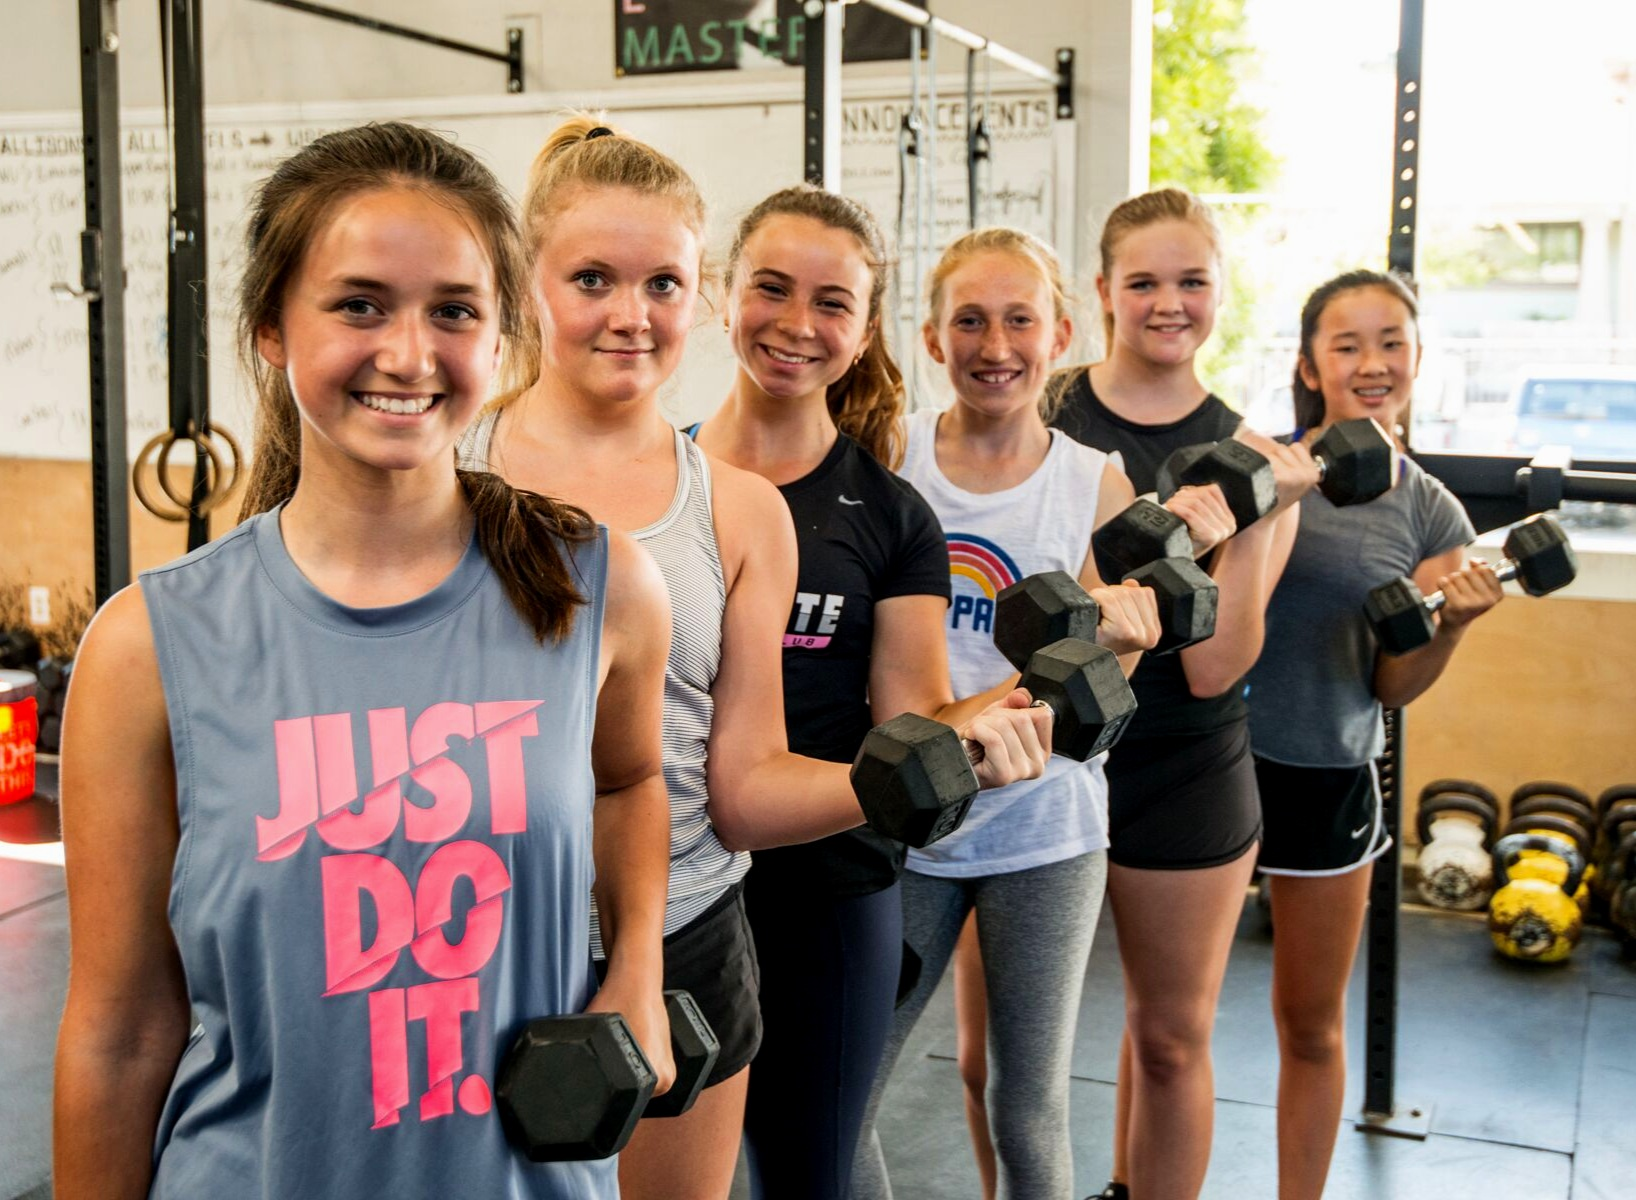 Girl Power! - Happy International Women's Day from TJ's Gym! We are all about promoting and developing strong, confident, capable, fit female leaders. We believe that fitness and physical strength are an important part of the equation, especially when pursued in the context of a welcoming, supportive, and encouraging environment. Here's to all of the strong girls and women in our midst!